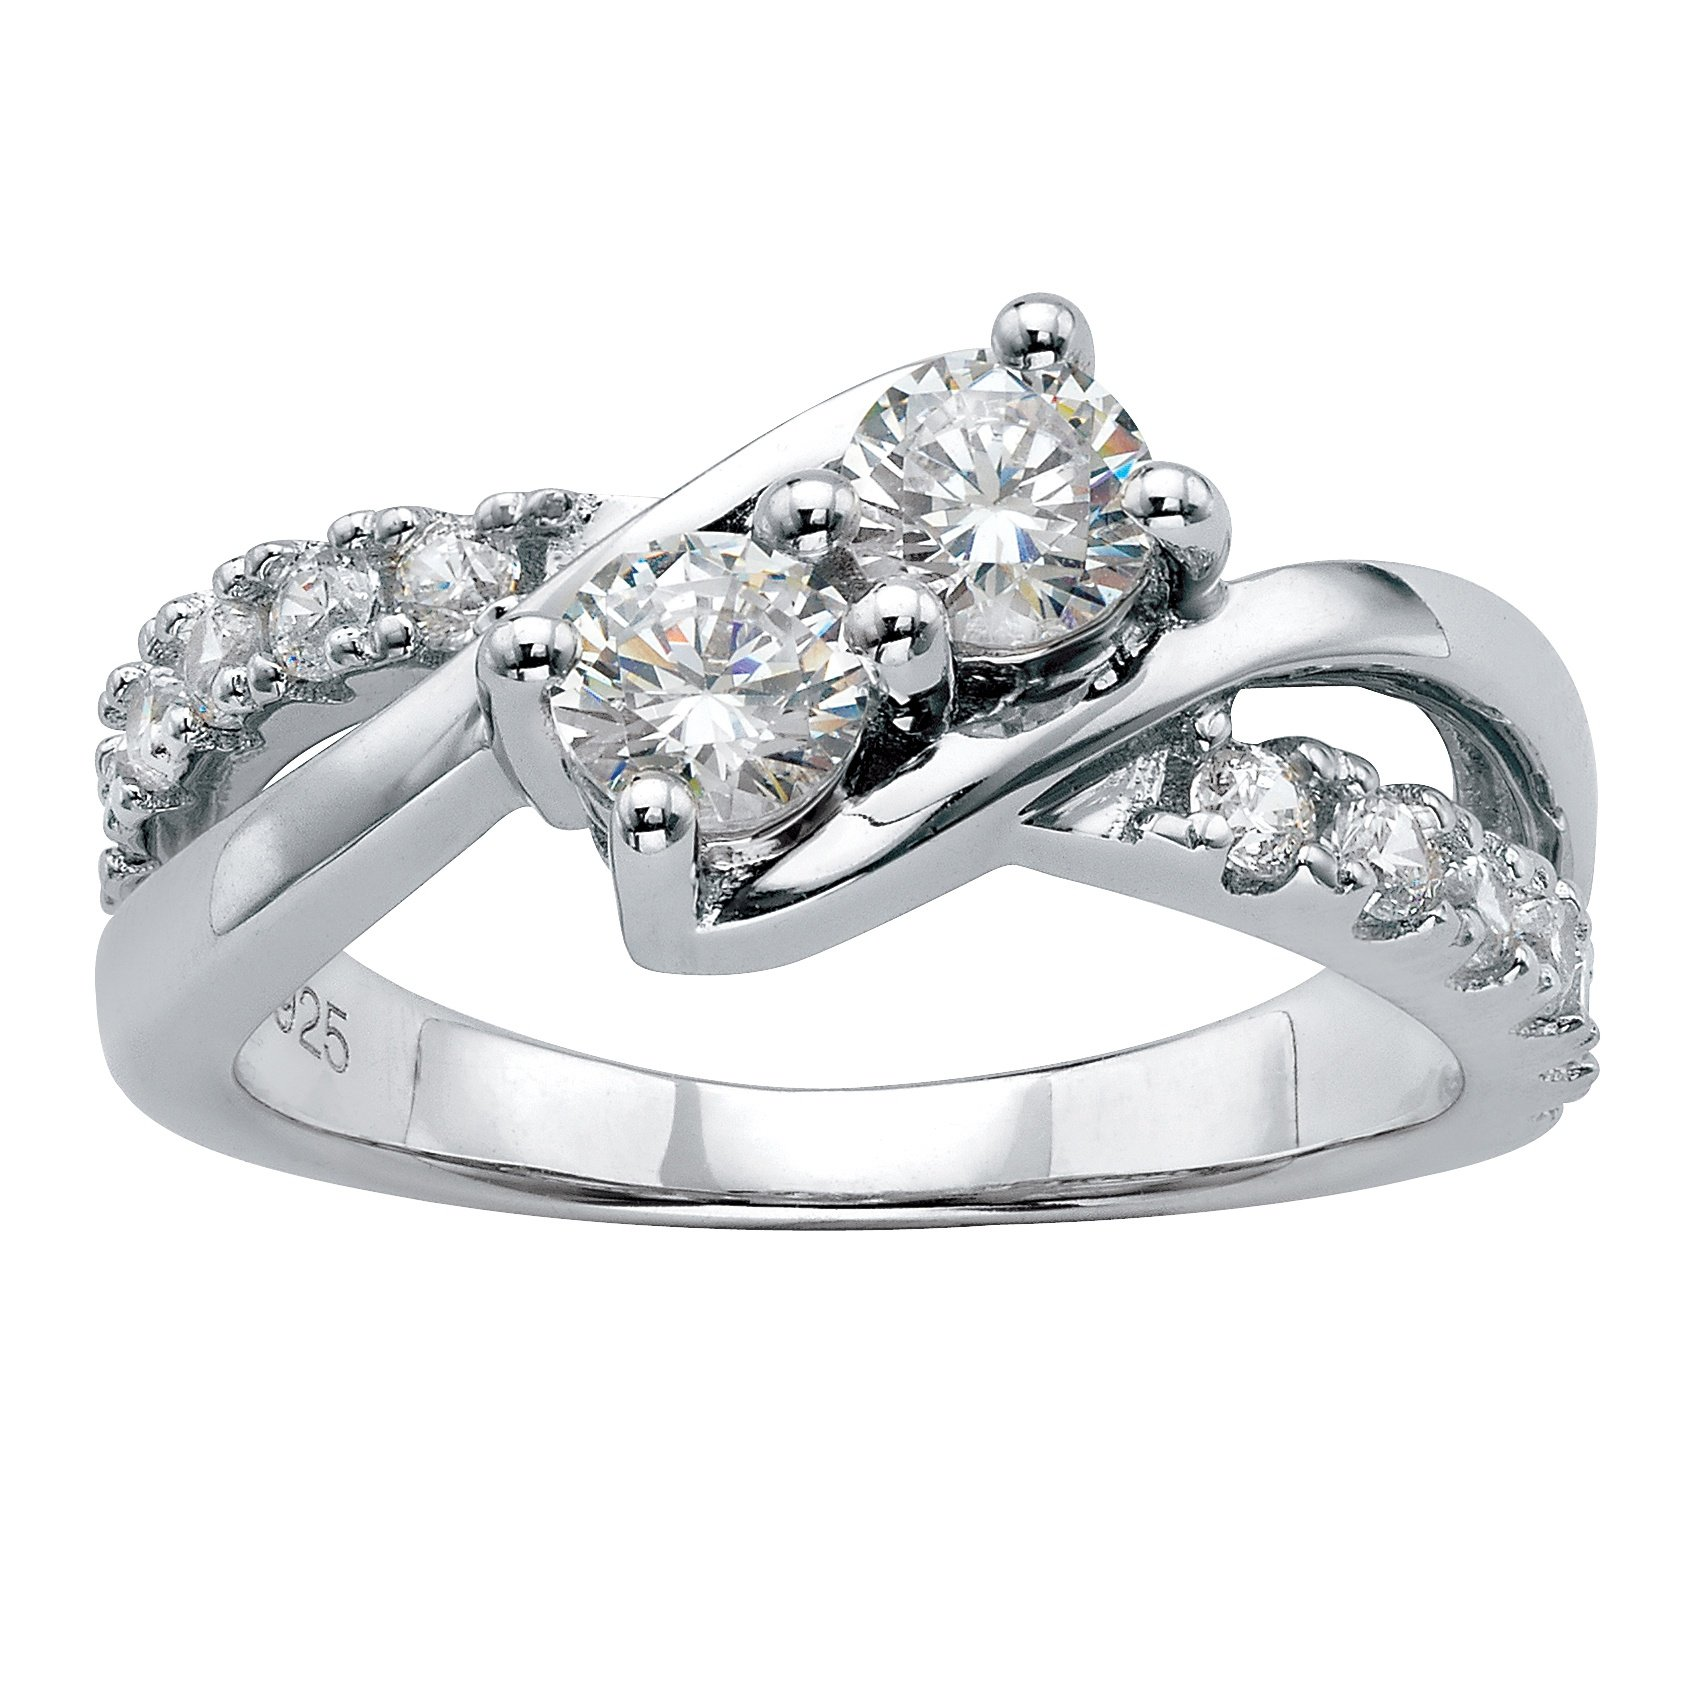 Platinum over Sterling Silver Round Cubic Zirconia Crossover Promise Ring Size 10